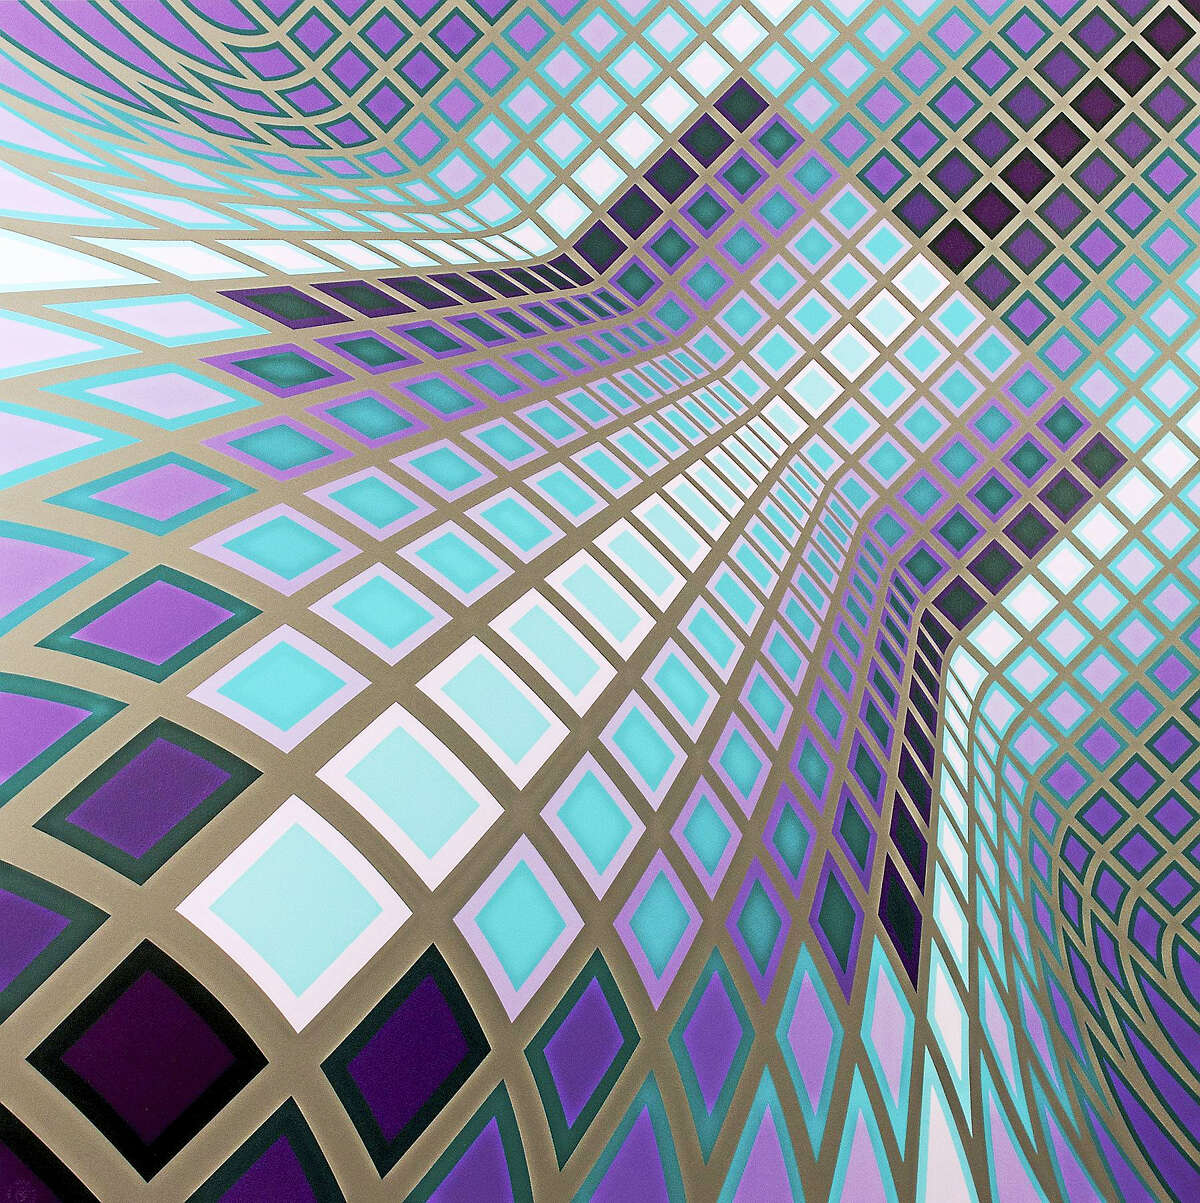 Contributed photoThe Mattatuck Museum will host an opening celebration Feb. 18 for the acclaimed exhibition Victor Vasarely: The Absolute Eye. The exhibition of over 60 serigraphs and objects is on loan from the Herakleidon Museum of Art in Athens, Greece.